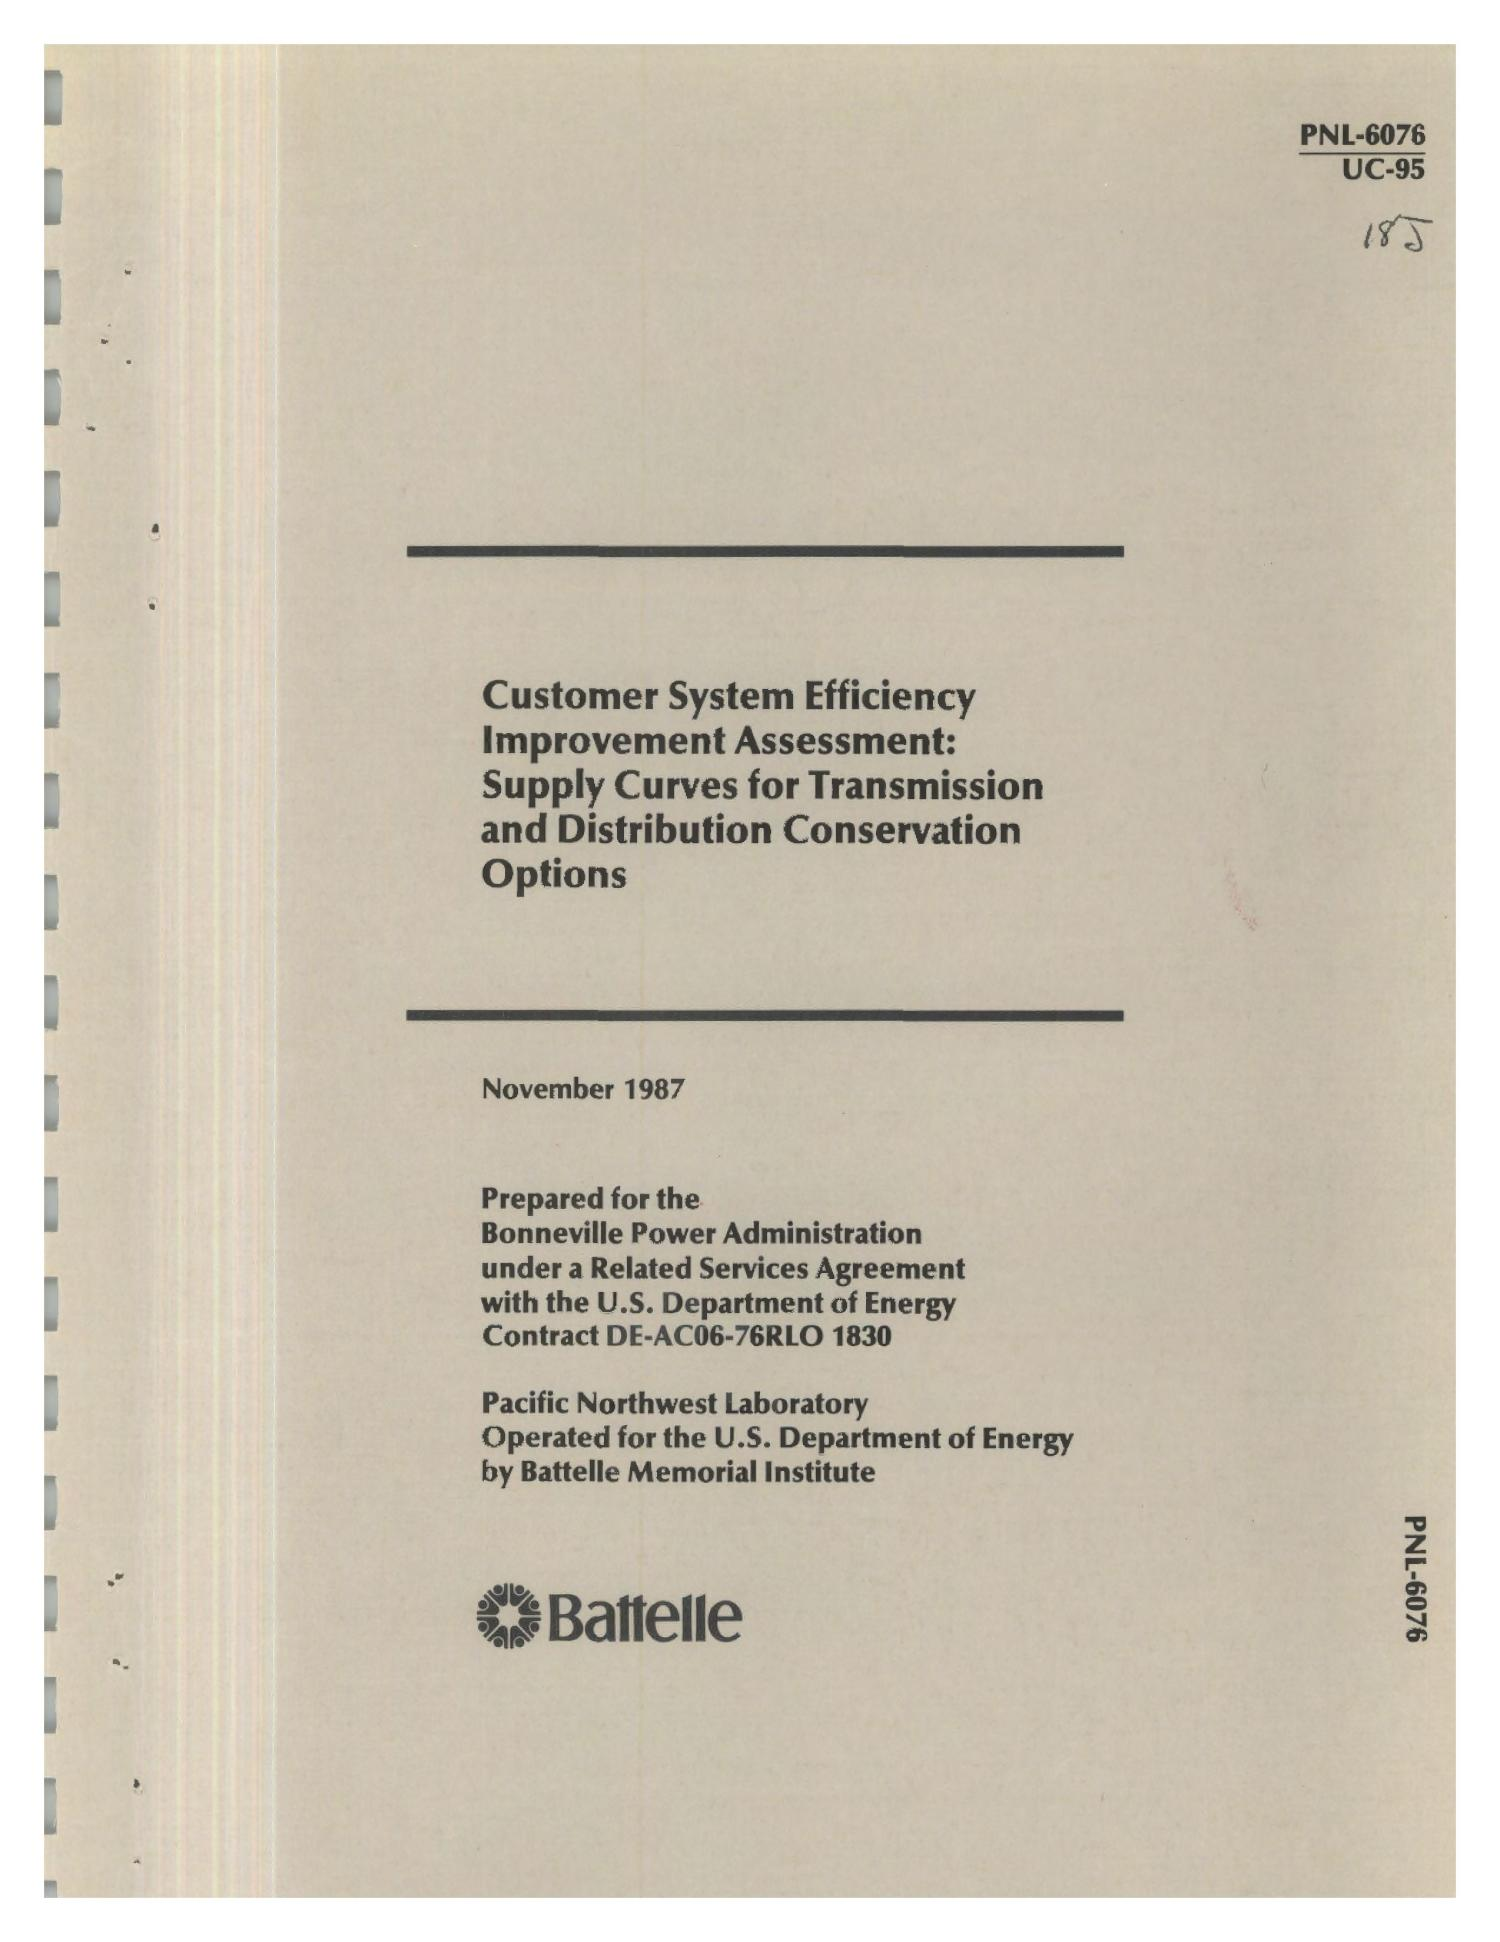 Customer system efficiency improvement assessment: Supply curves for transmission and distribution conservation options                                                                                                      [Sequence #]: 1 of 93